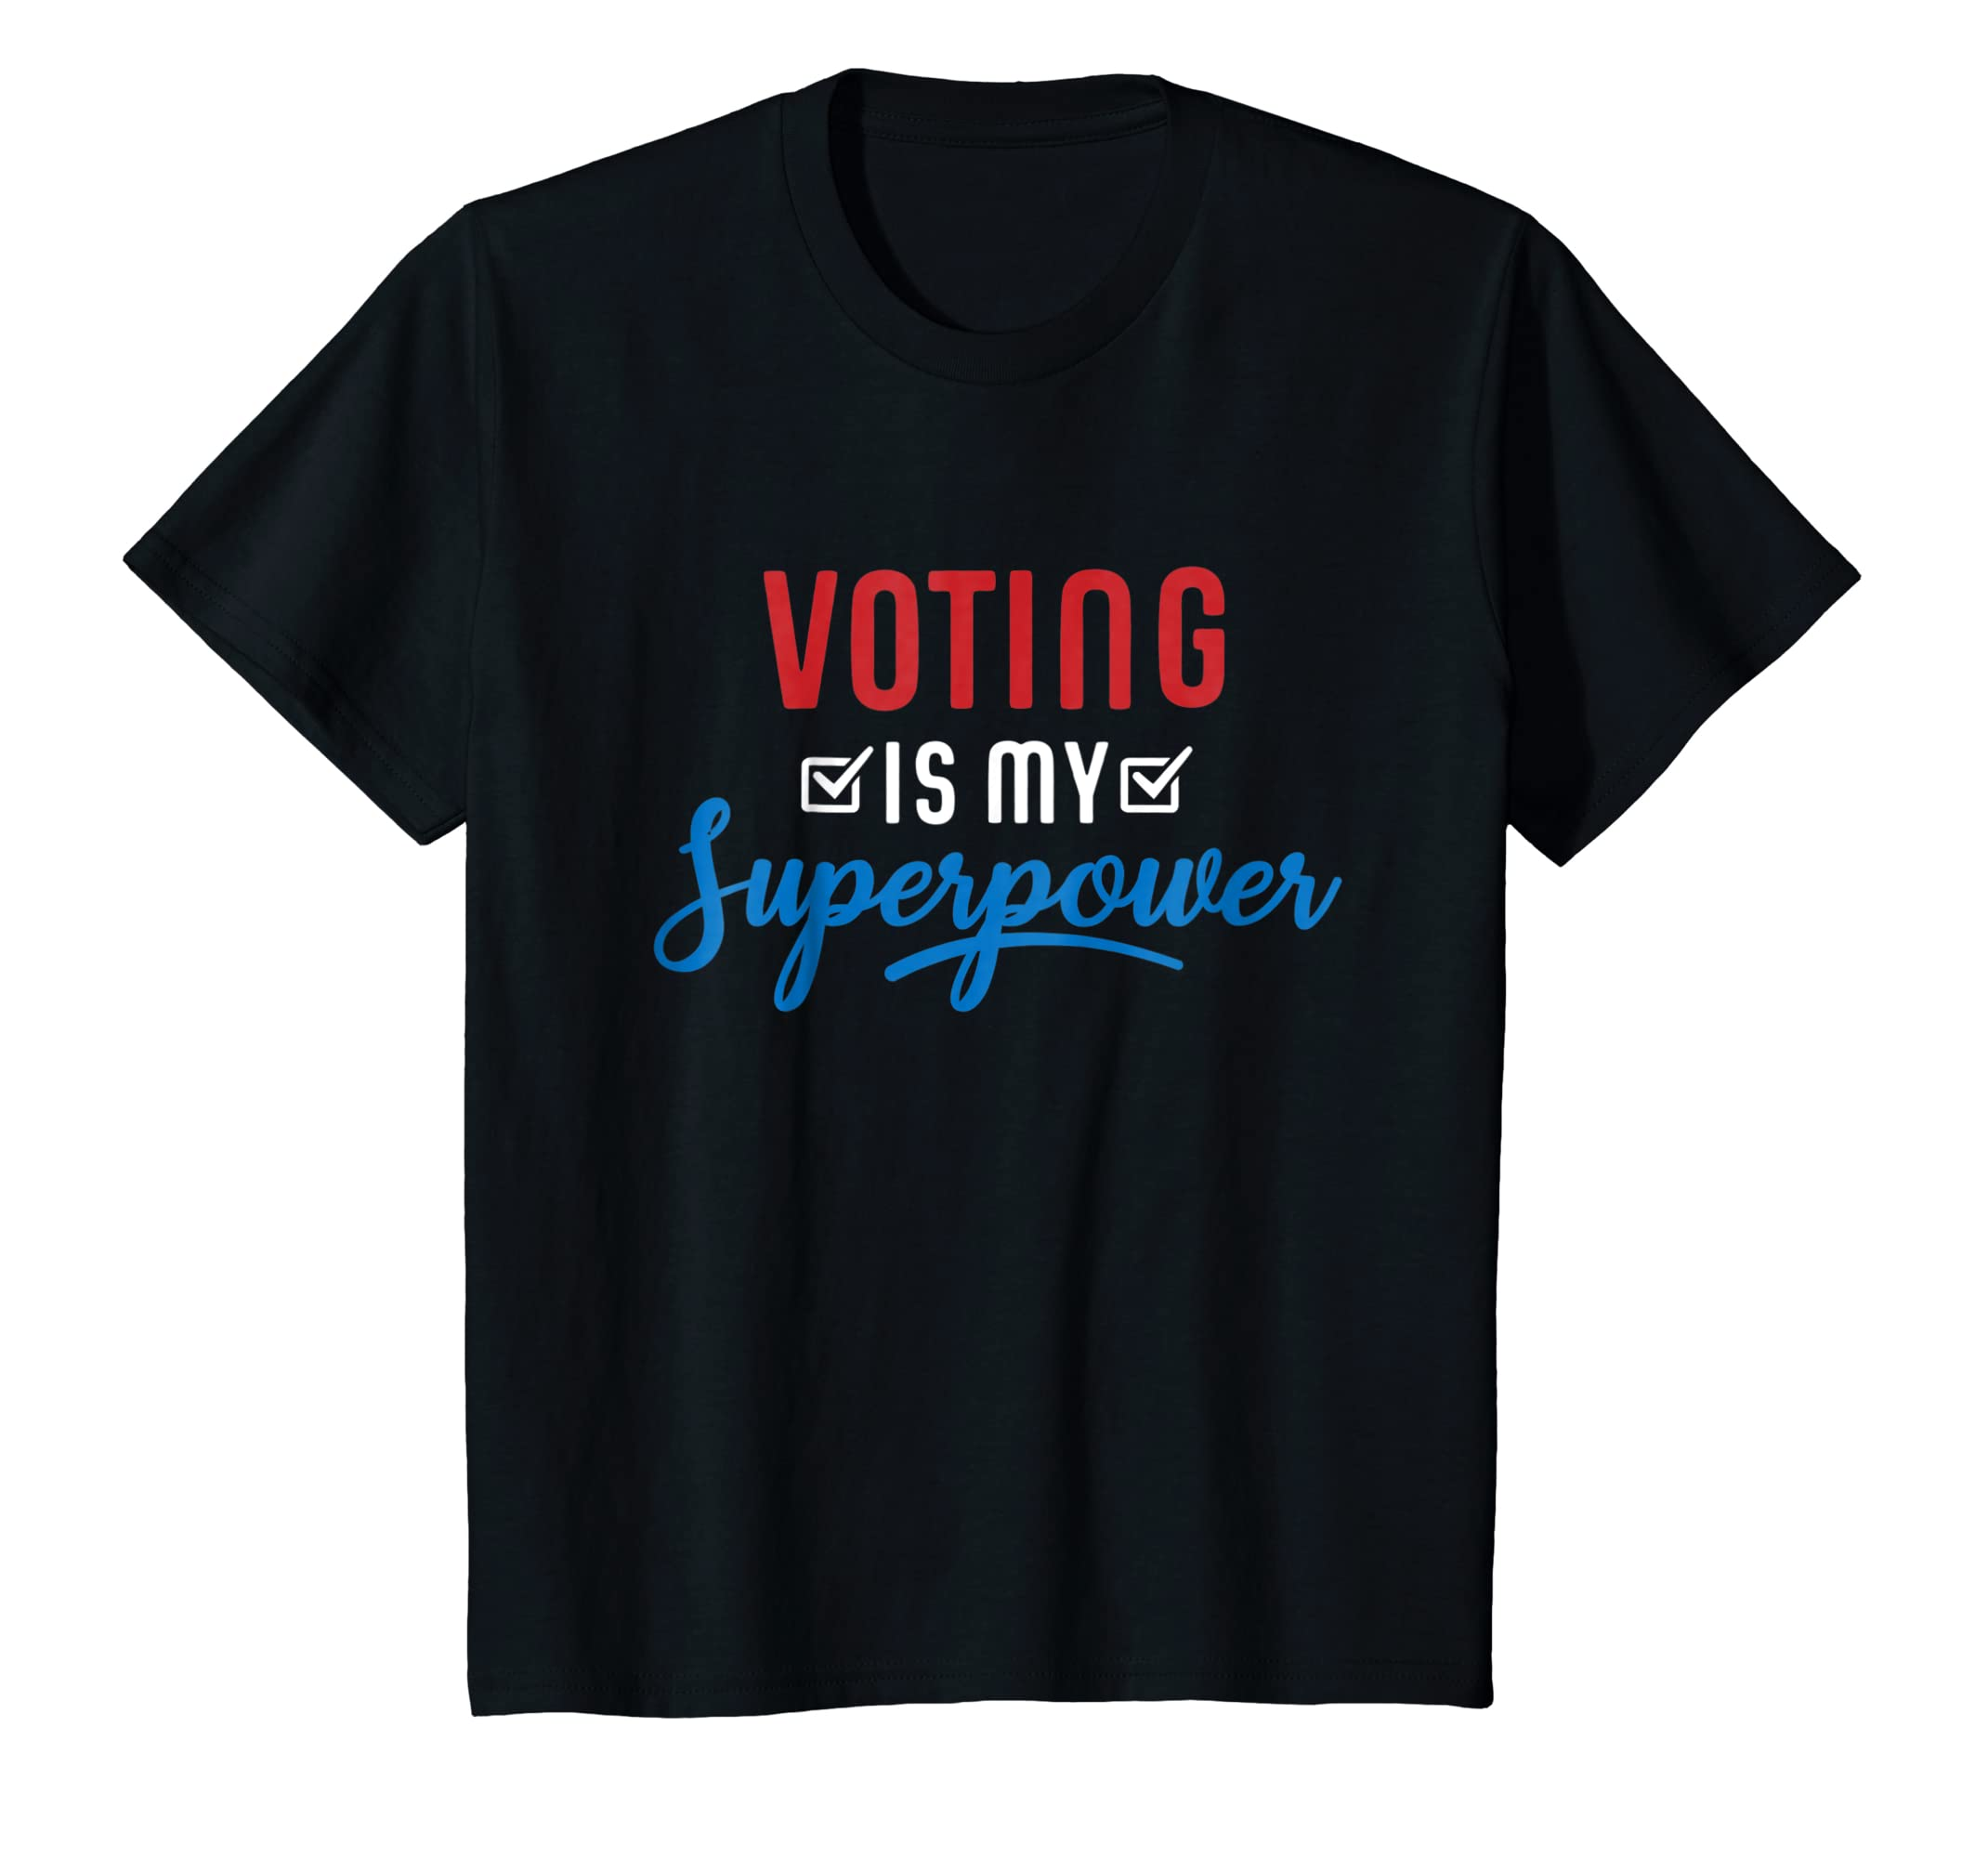 Voting Is My Superpower Shirt Campaign Gifts-Colonhue